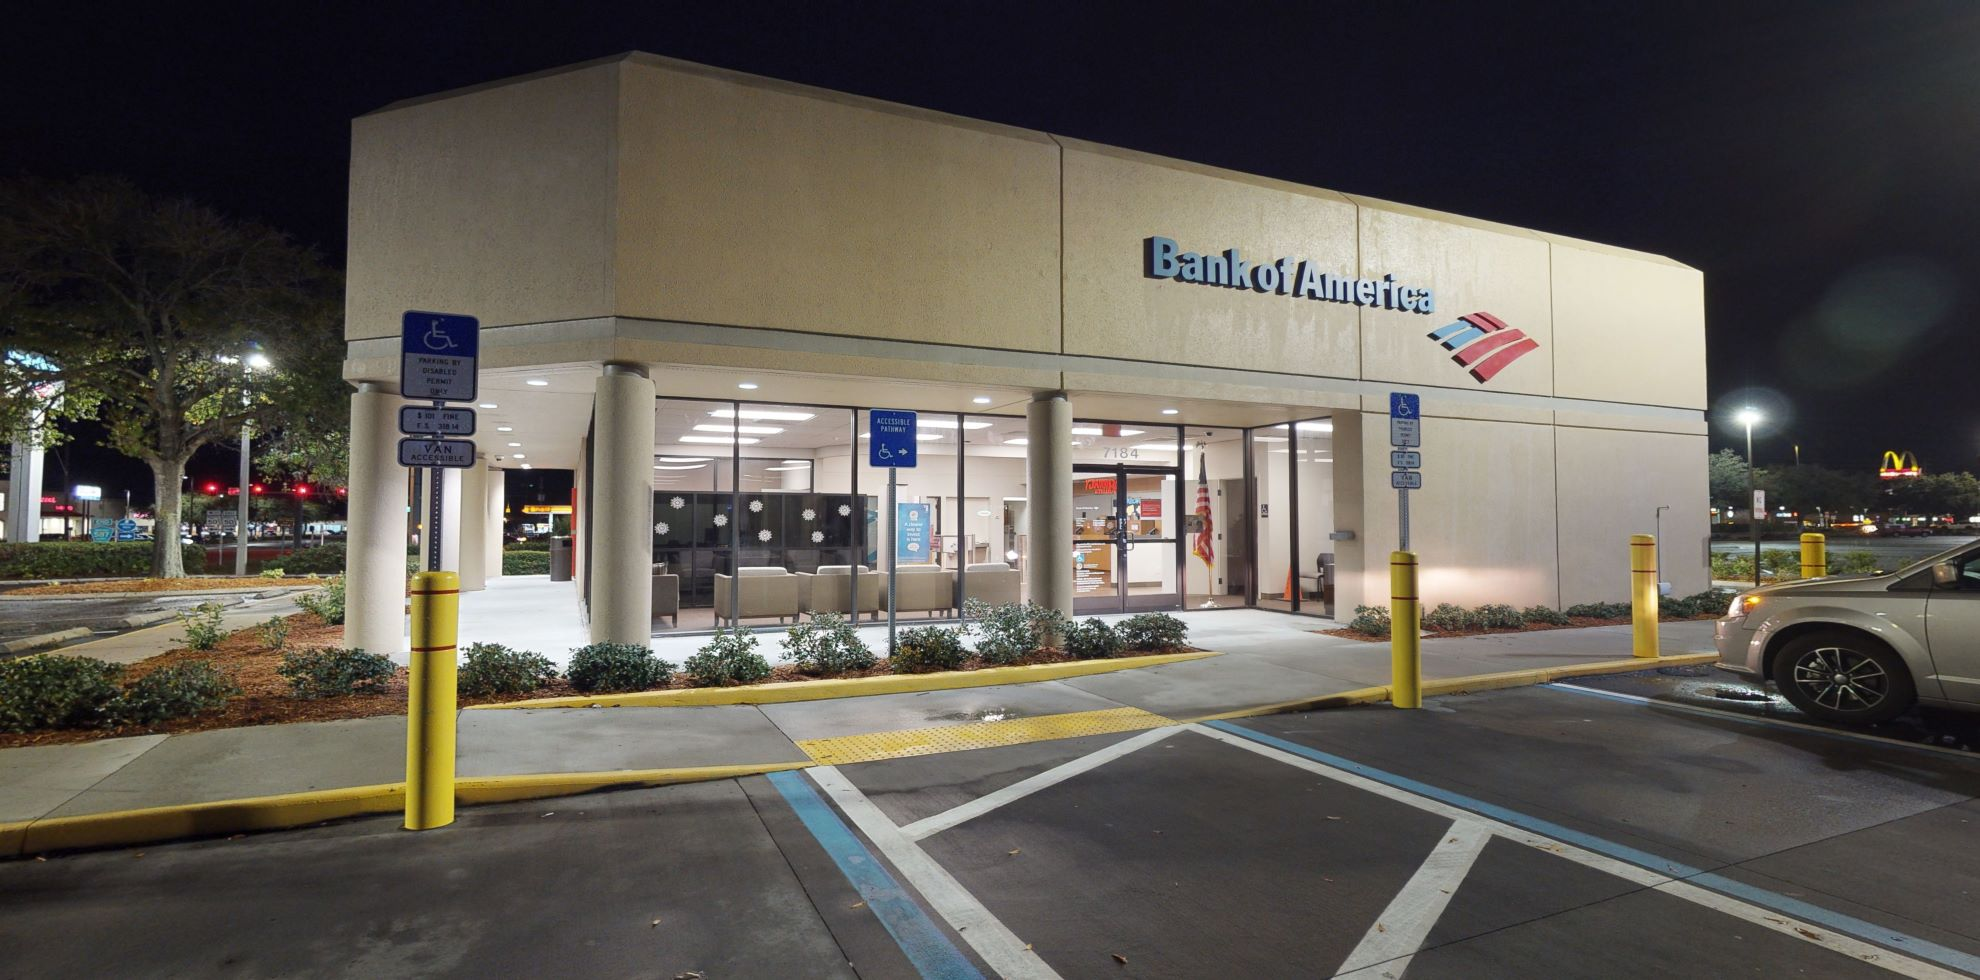 Bank of America financial center with drive-thru ATM | 7184 Mariner Blvd, Spring Hill, FL 34609